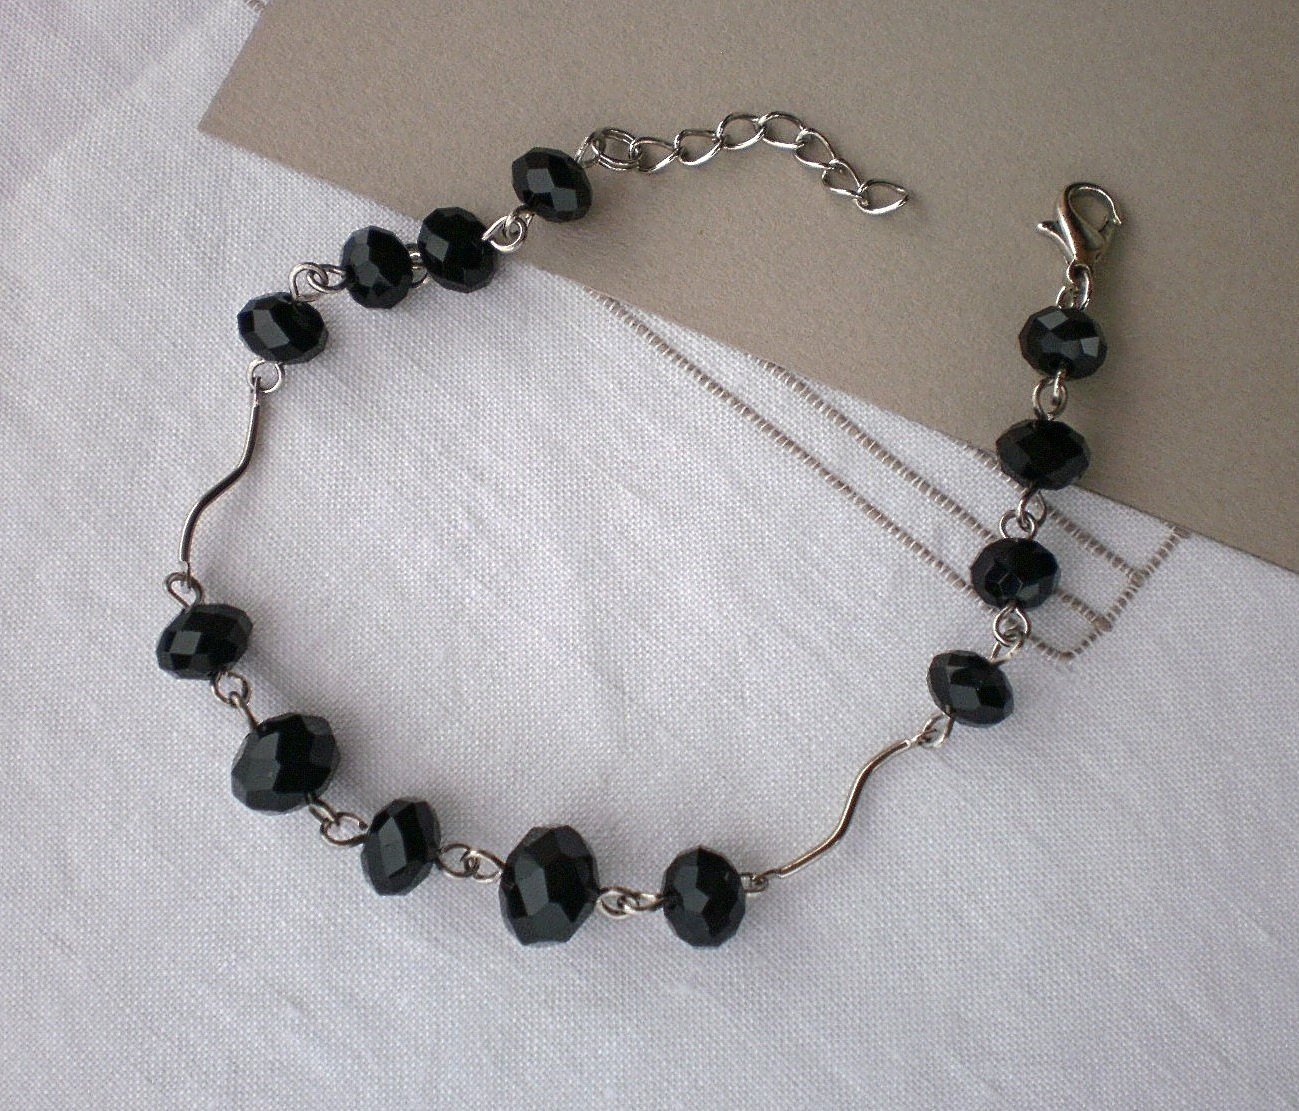 Black Jet Faceted Crystal Beaded Bracelet Handcrafted Designer Jewelry Black Crystal Beaded Jewelry